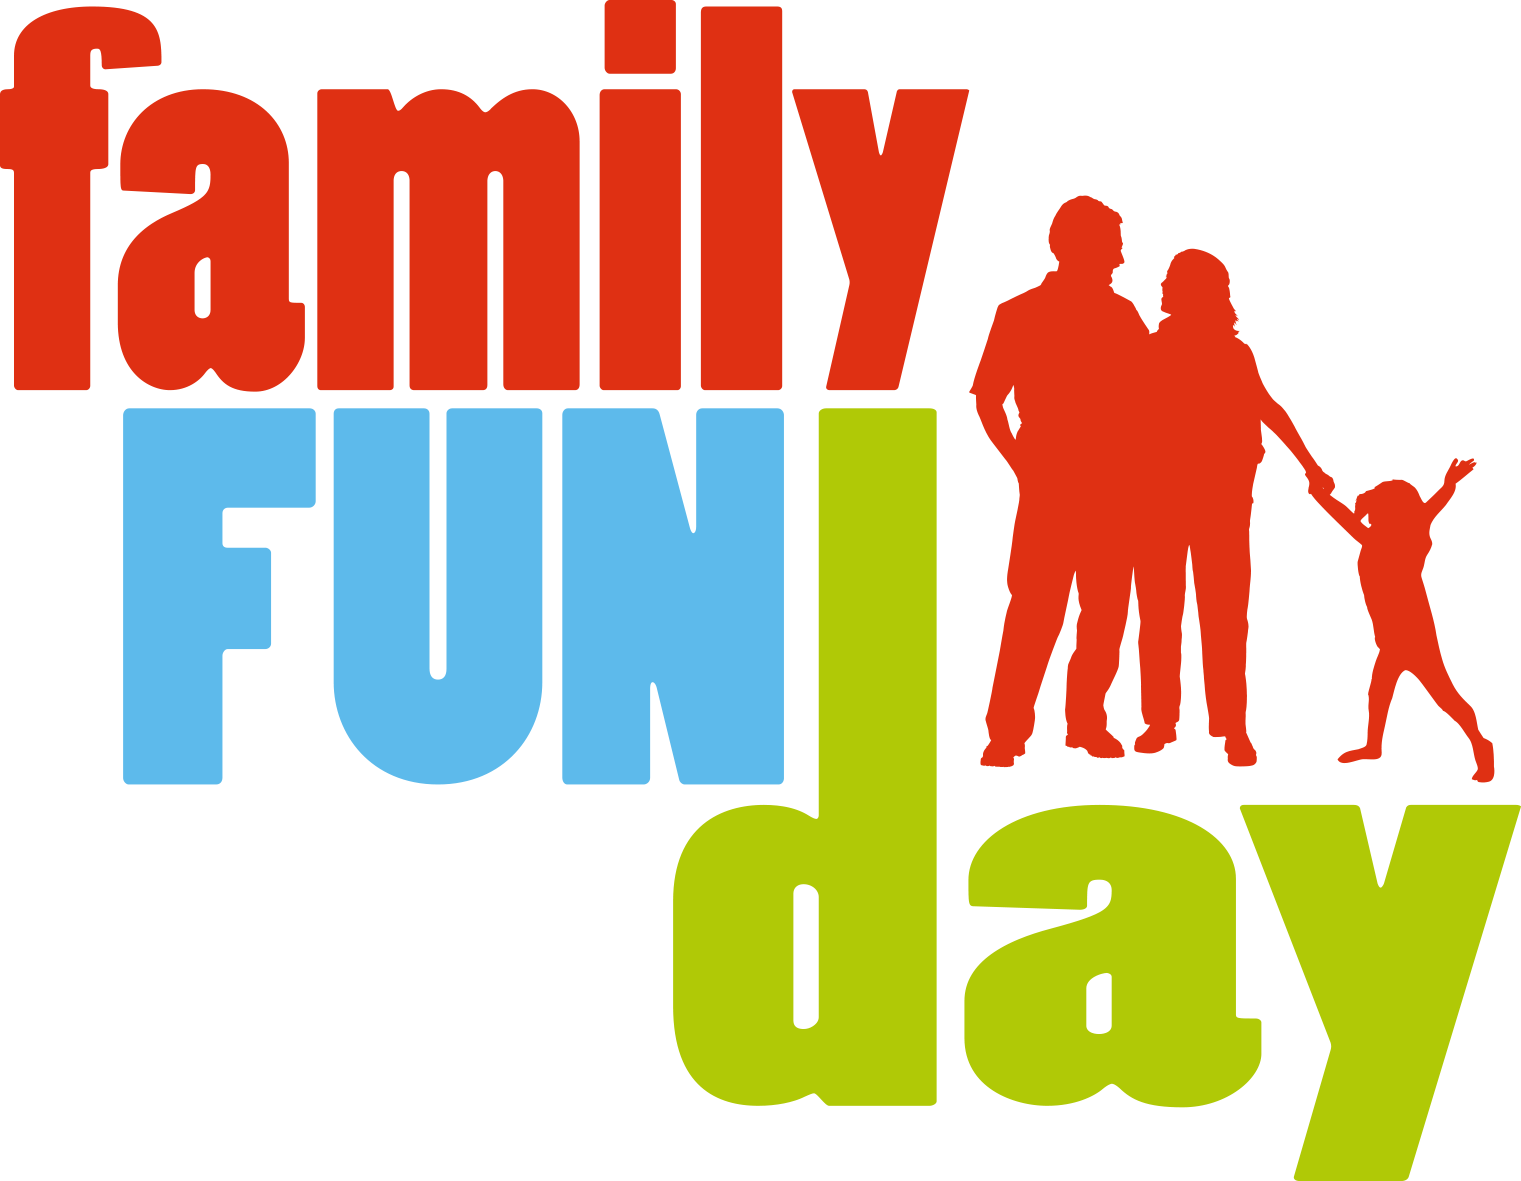 jpg freeuse stock Chip ragsdale fun chipragsdale. 2017 clipart family day